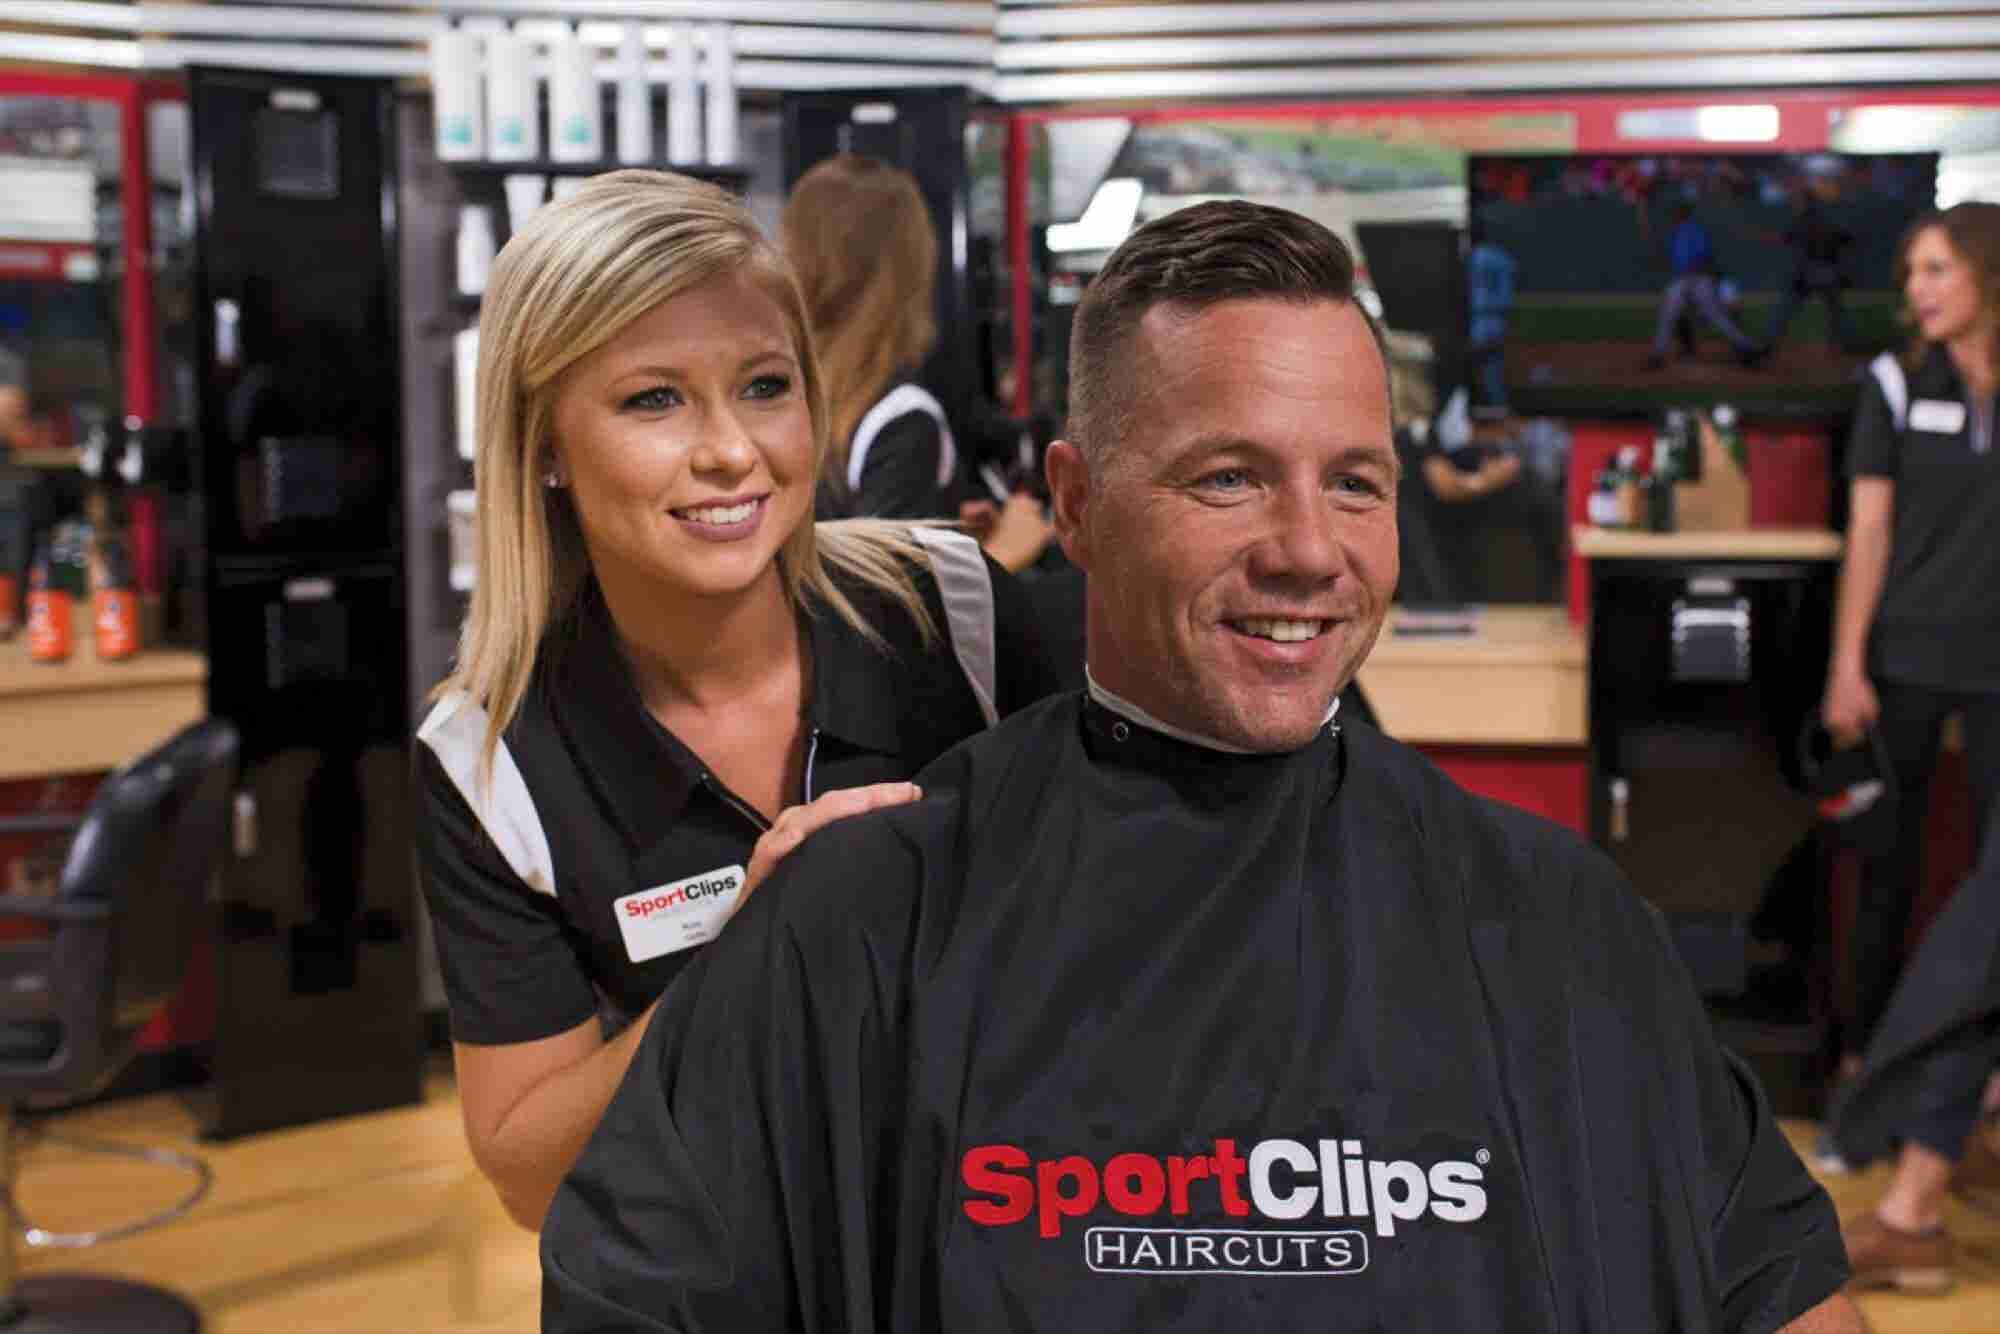 To Compete Against Other Salons, Sport Clips Made It Easier for Franchisees to Run Their Businesses